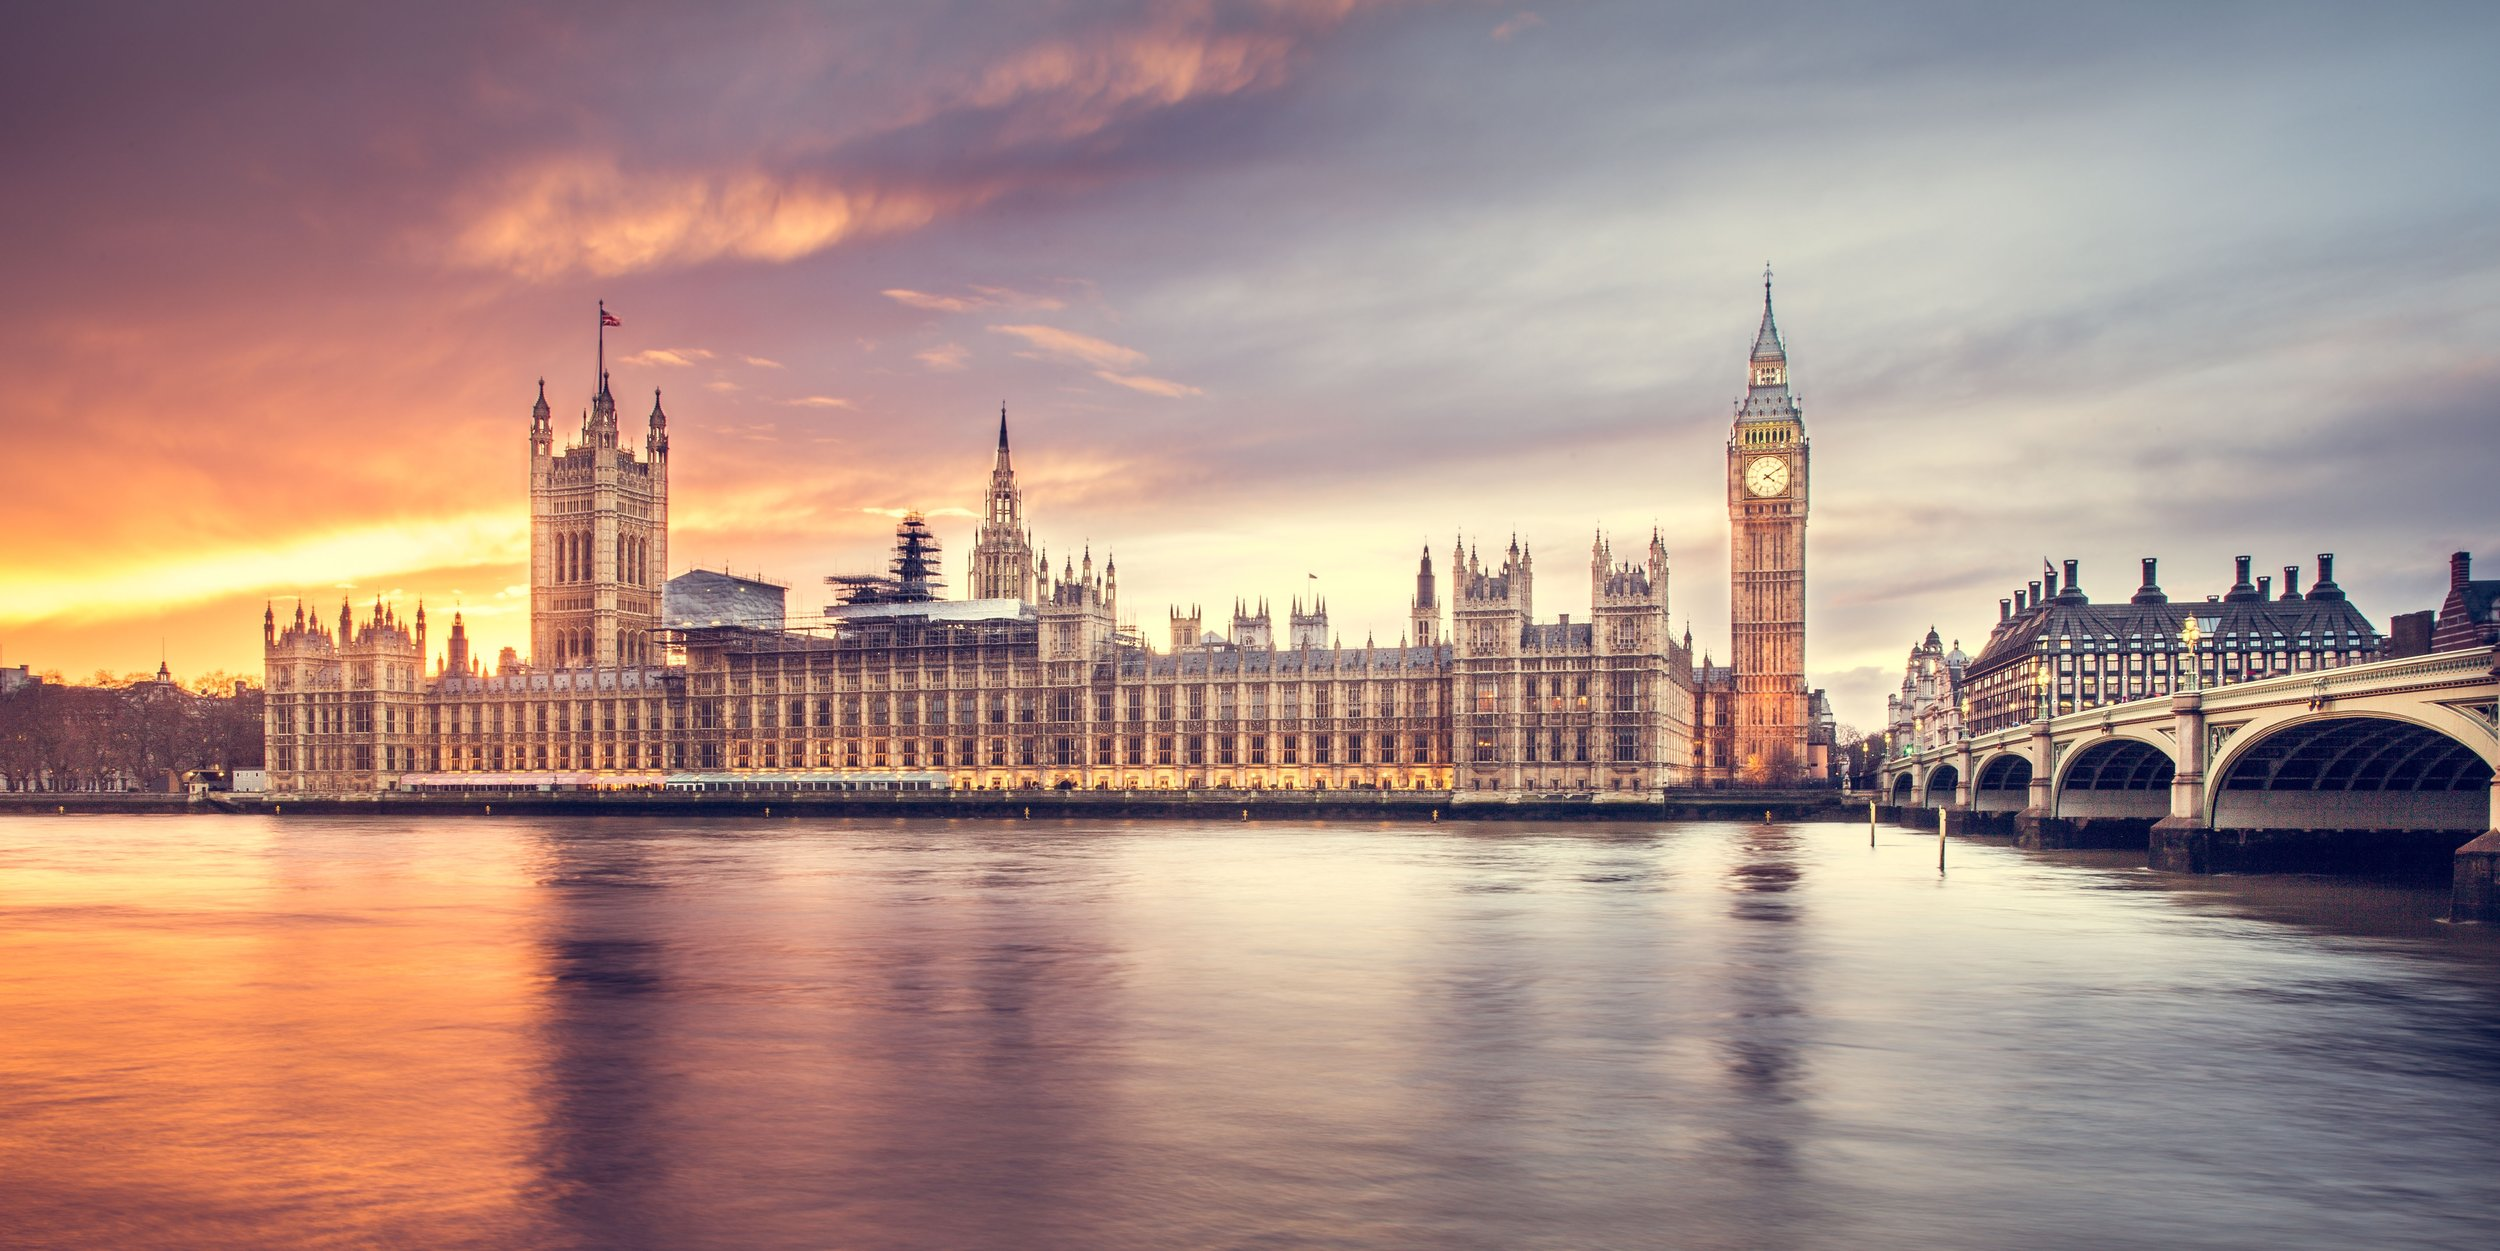 London is a dream destination for most people.